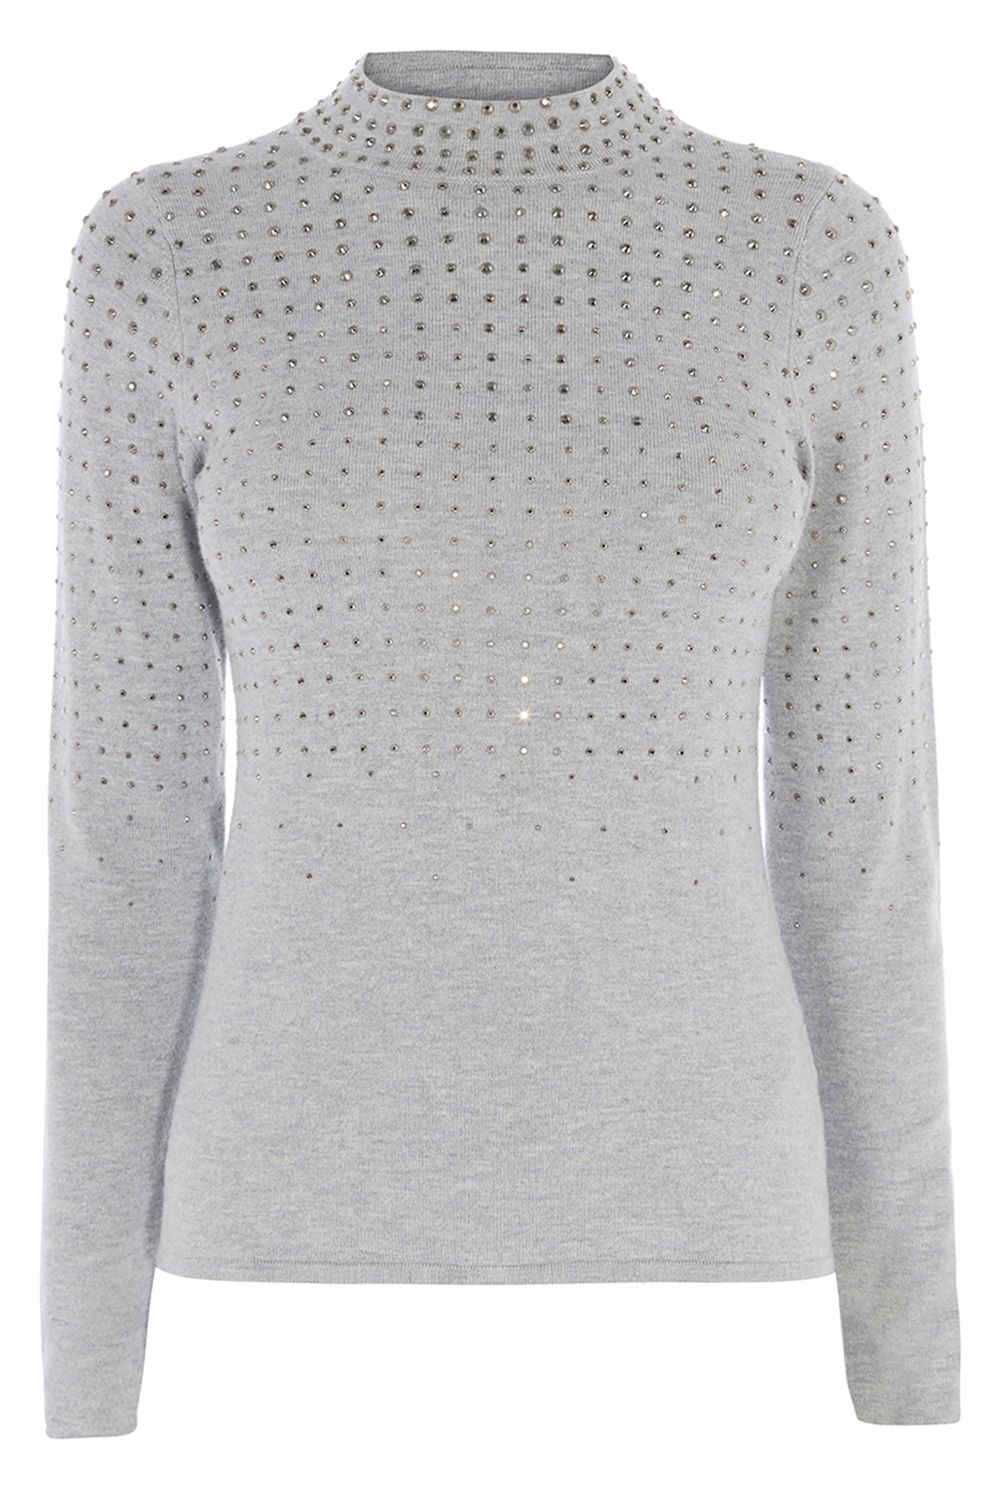 Coast Sadie Hotfix Knit Top, Grey